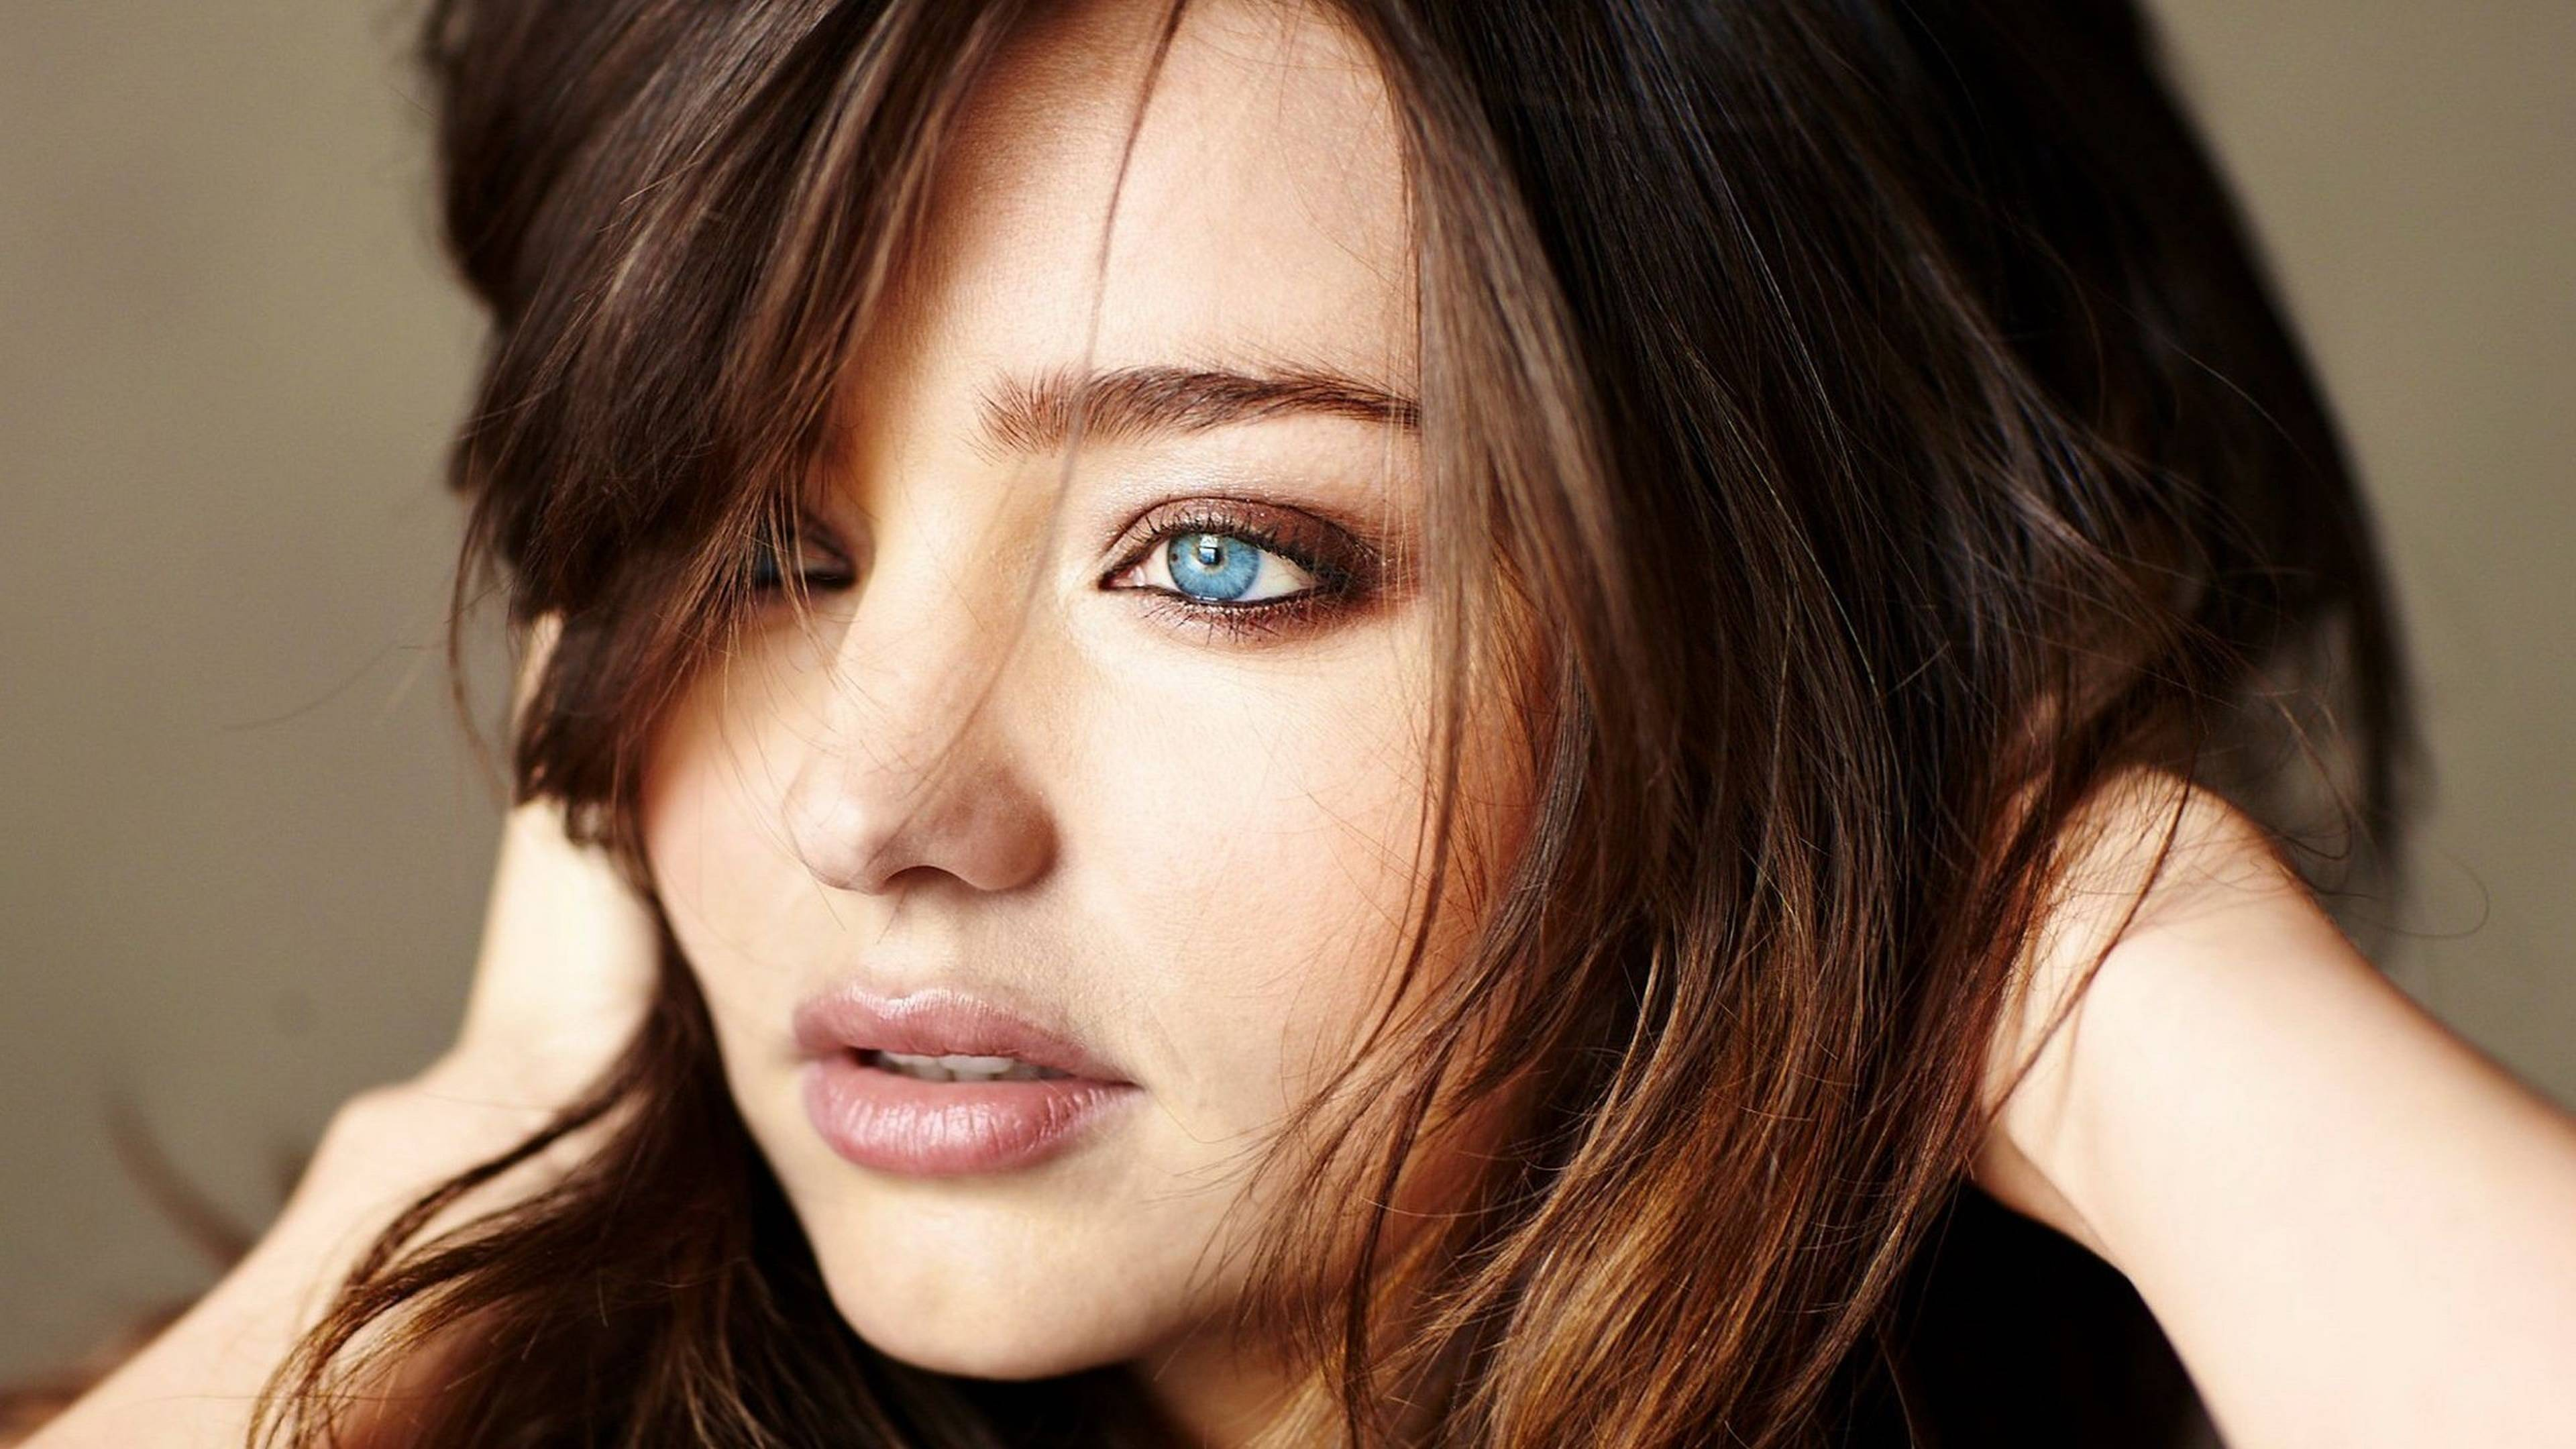 Eye Catching Look Of Miranda Kerr Wallpapers Wallpapers